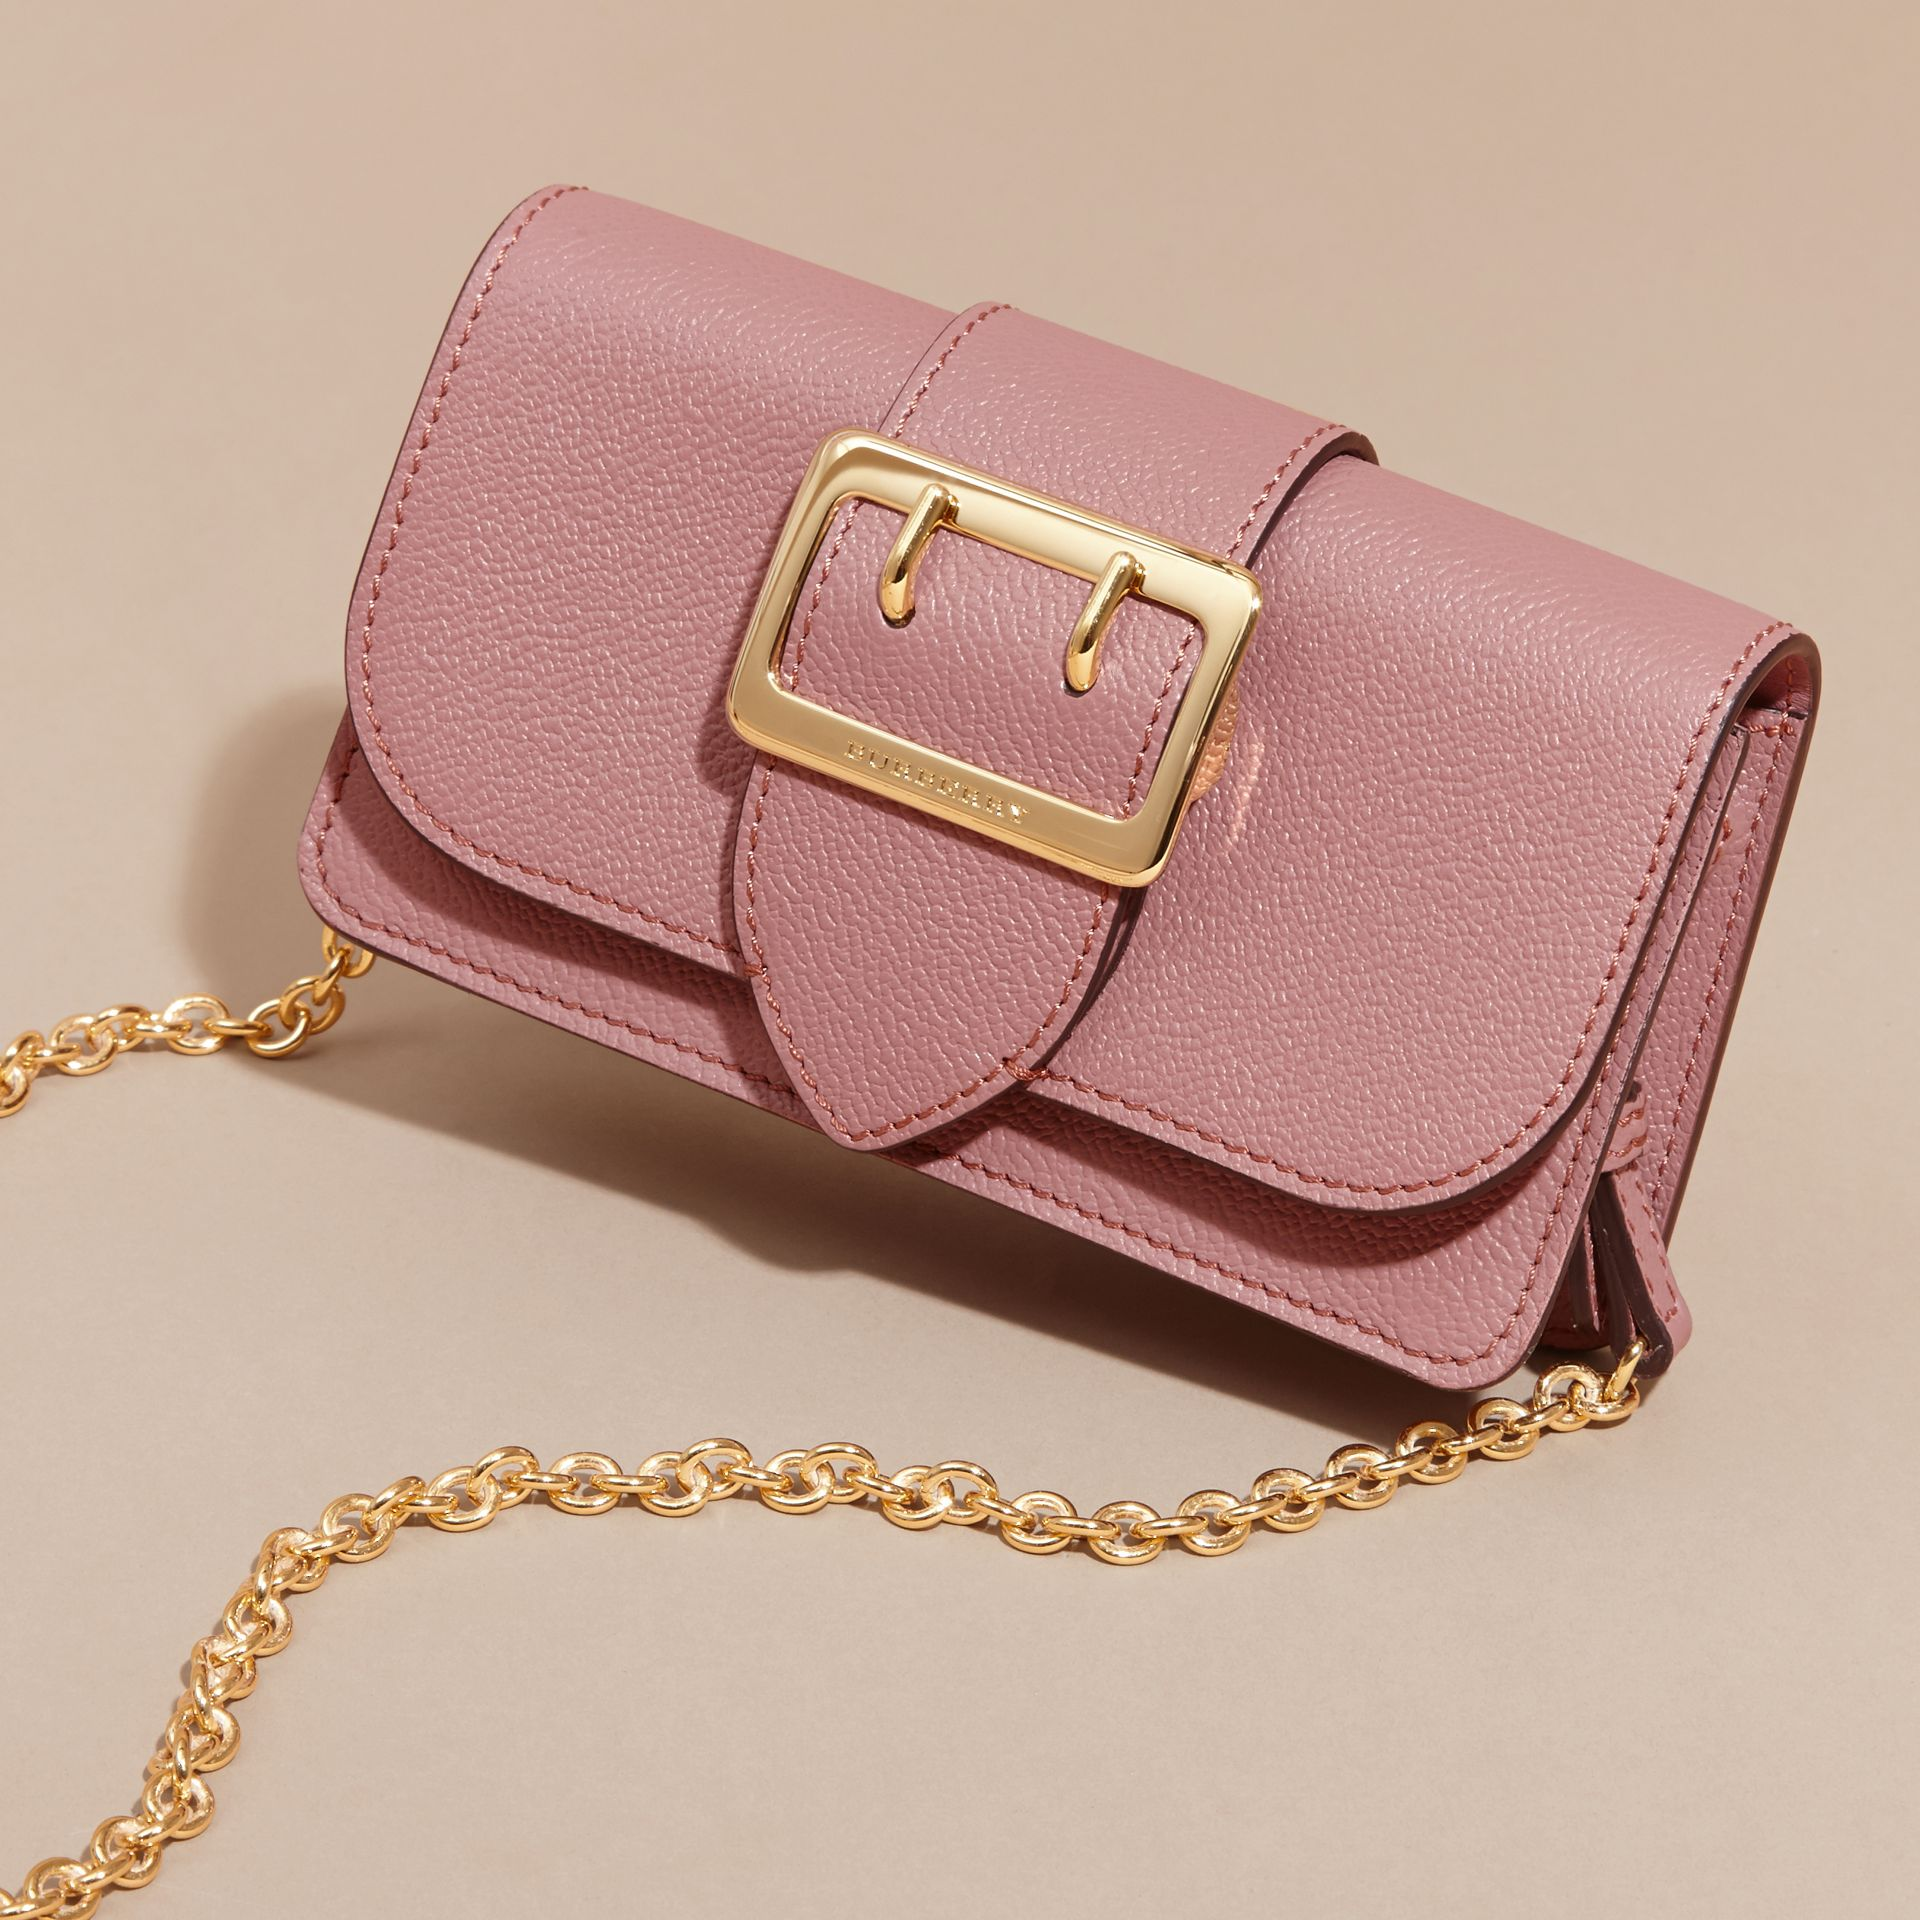 The Mini Buckle Bag in Grainy Leather in Dusty Pink - Women | Burberry - gallery image 8